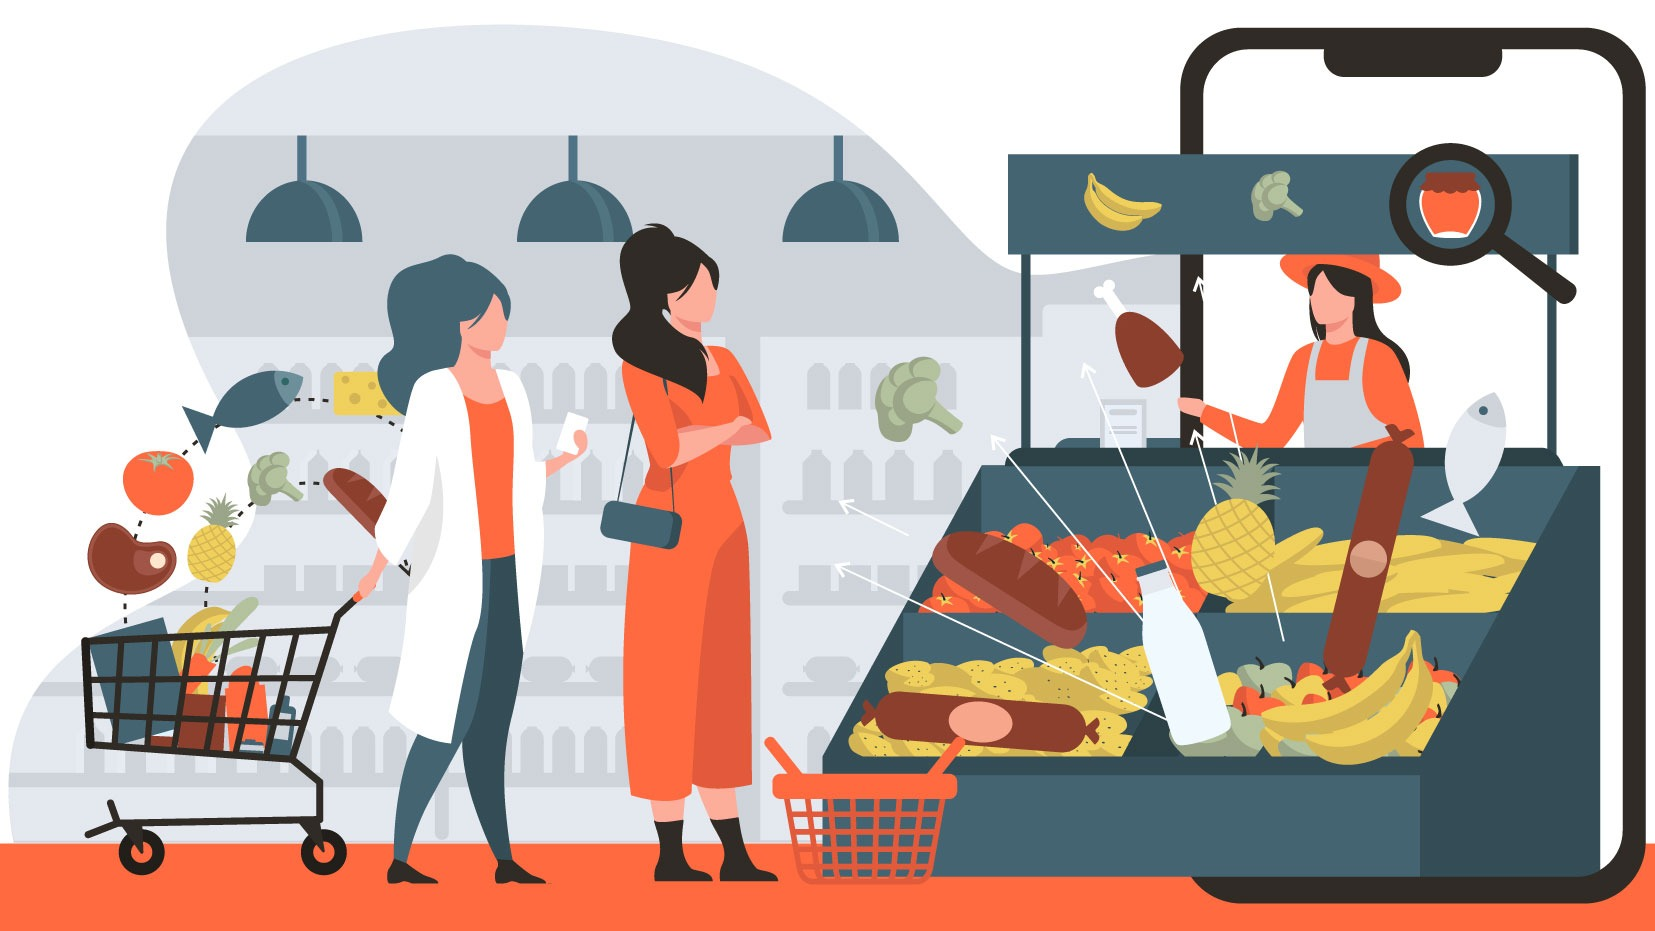 With eCommerce Grocery Sales Doubling, Here is How to Keep Control on your Site